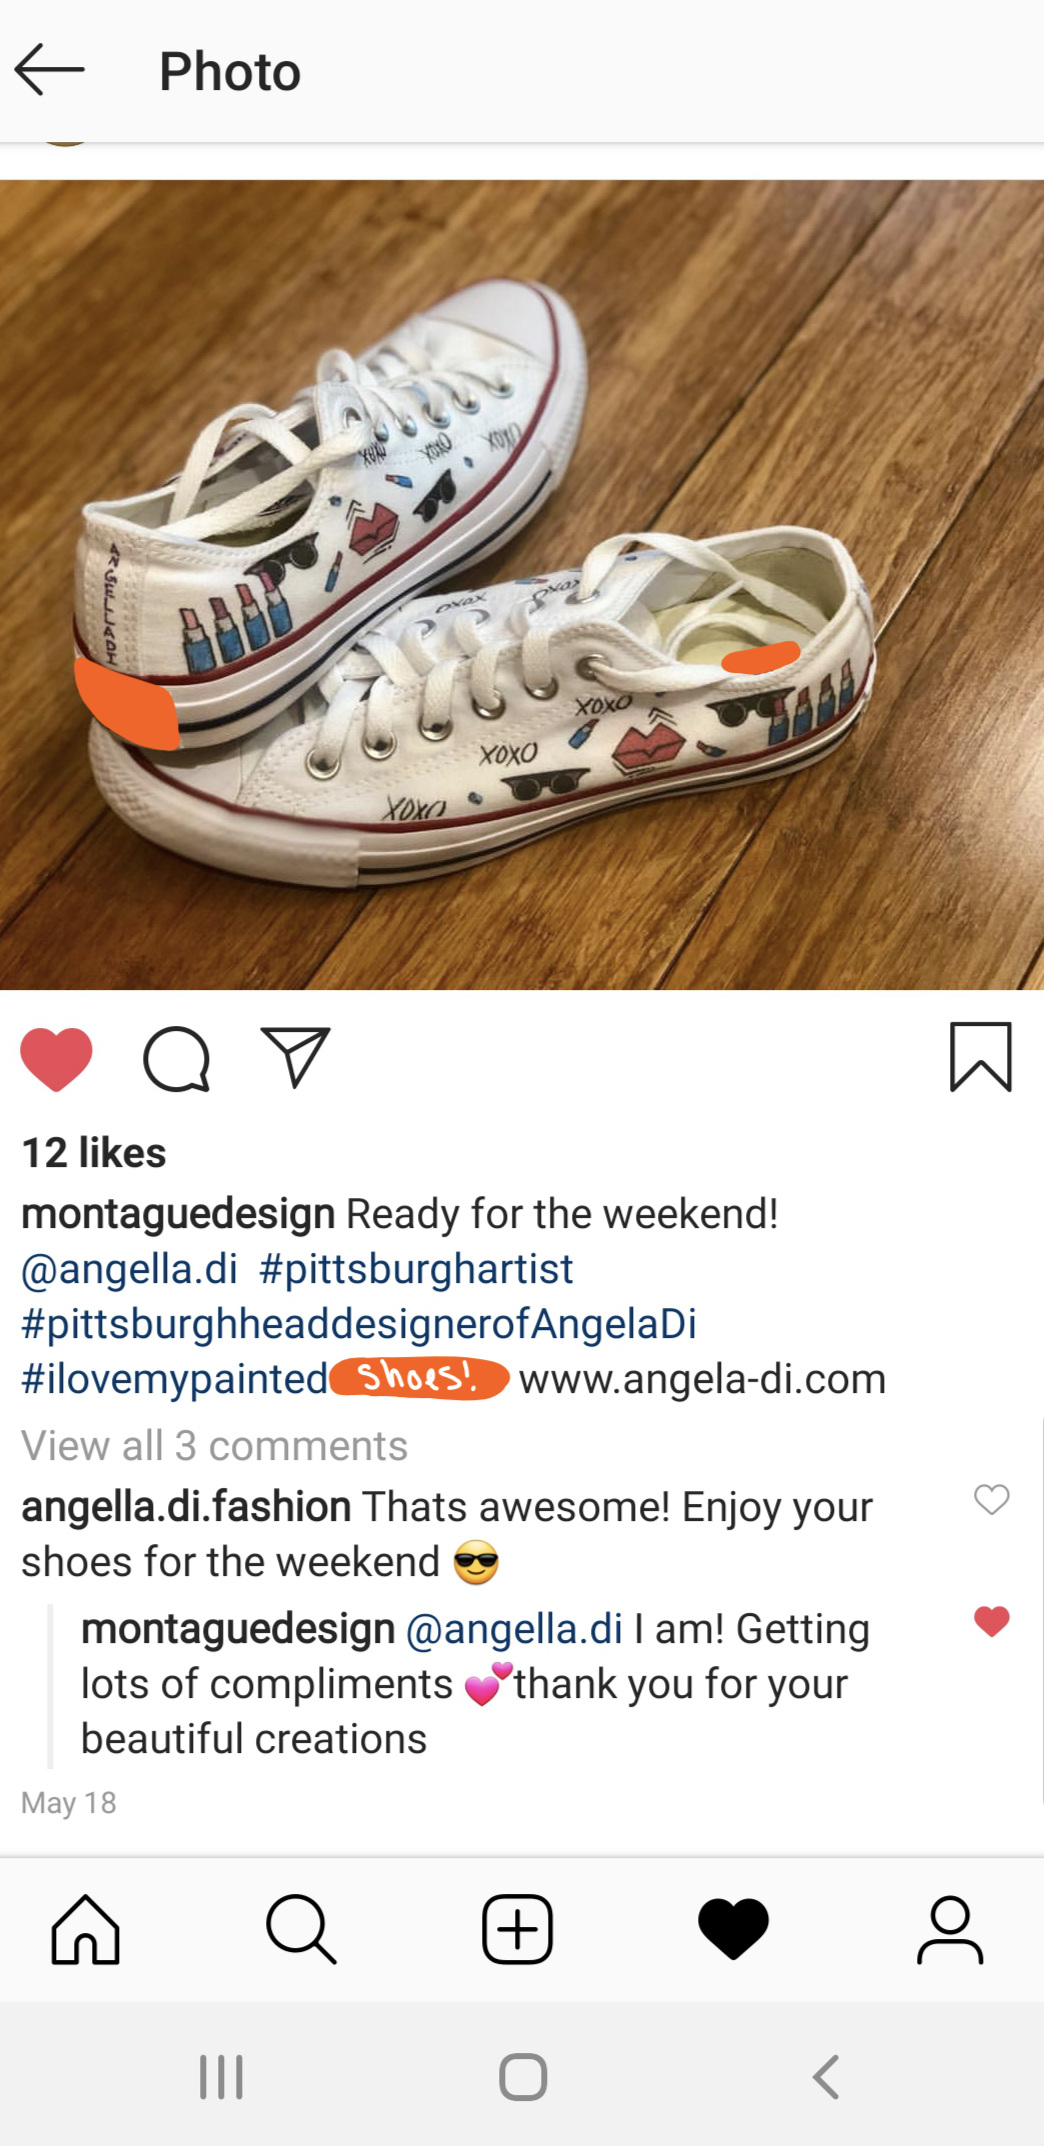 Party on in your Angella Di shoes montaguedesign!! -